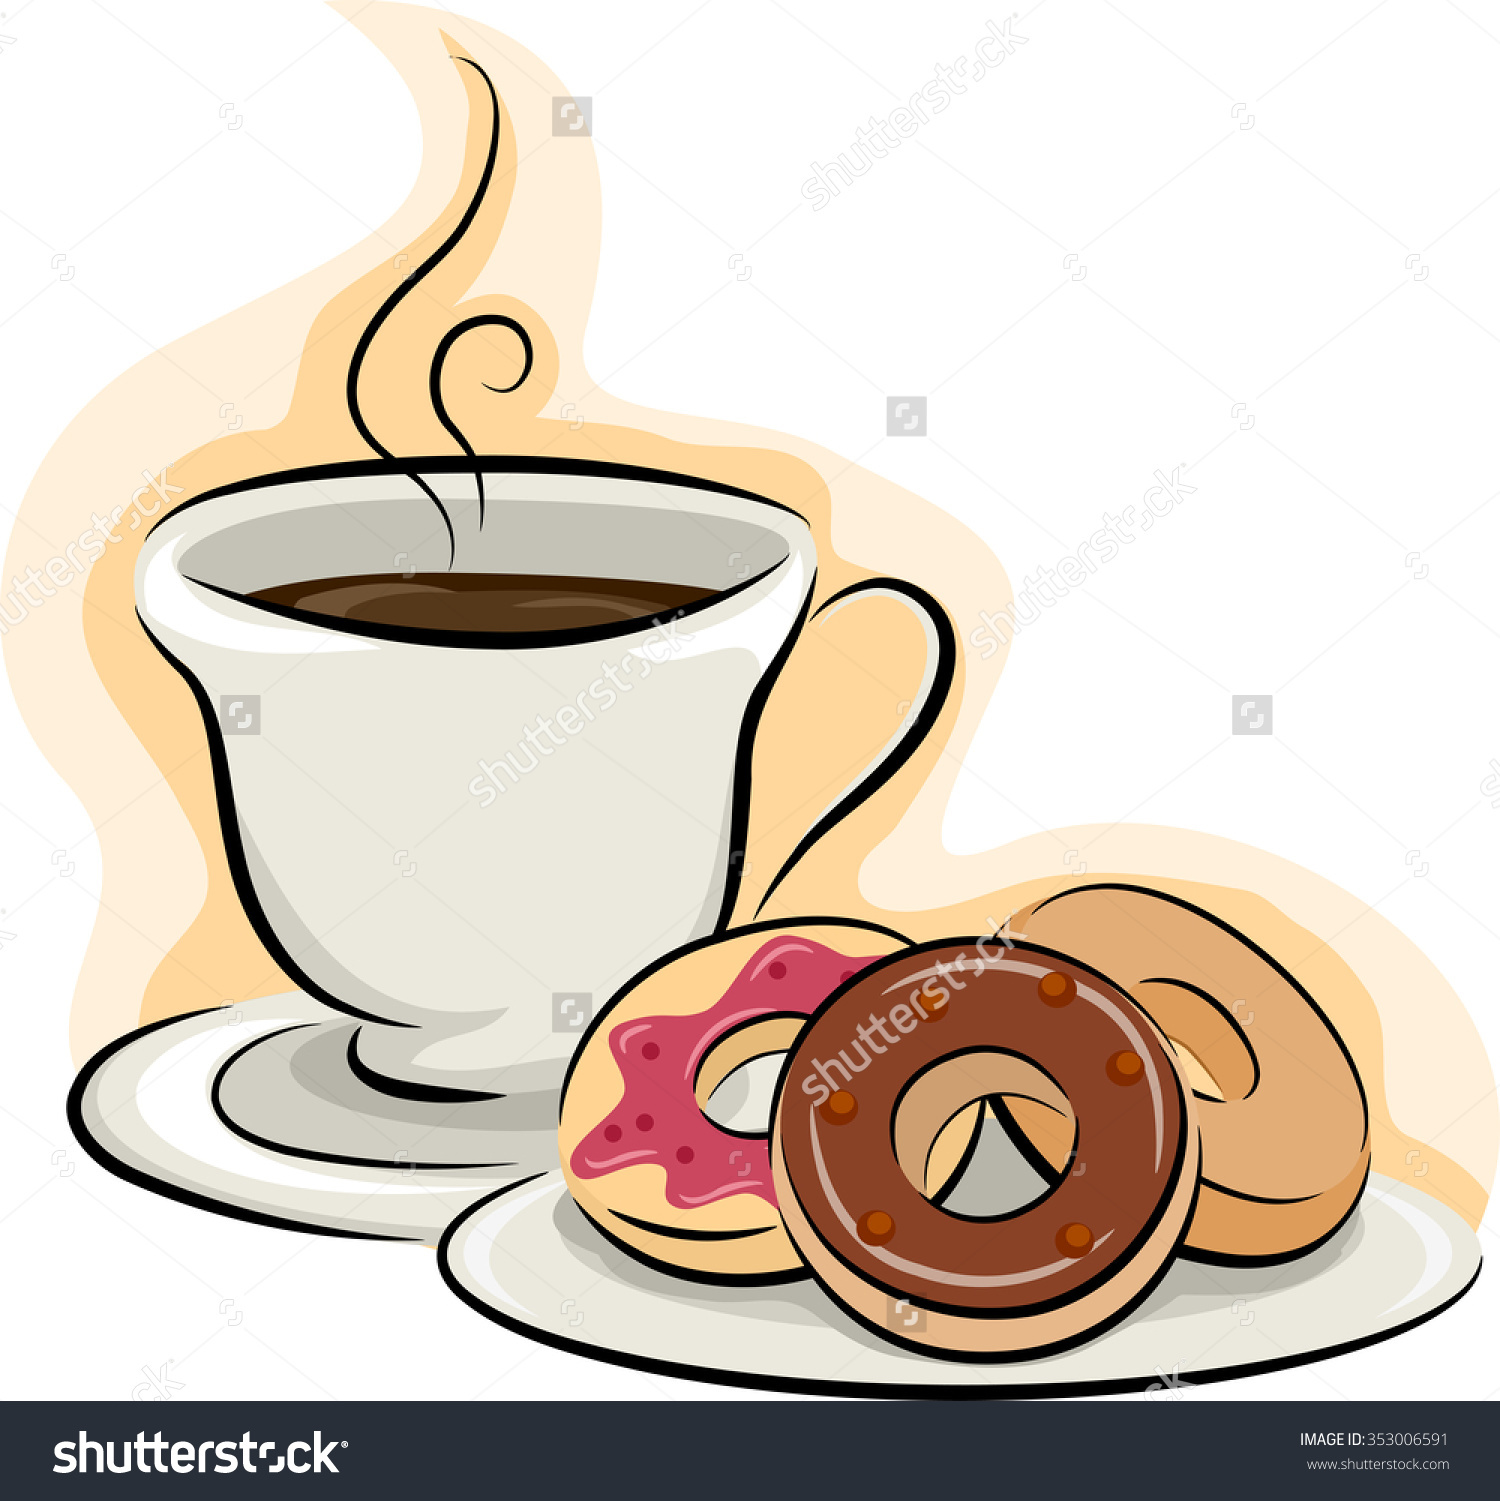 Coffee and doughnuts clipart black and white stock Donut Clipart Free | Free download best Donut Clipart Free ... black and white stock